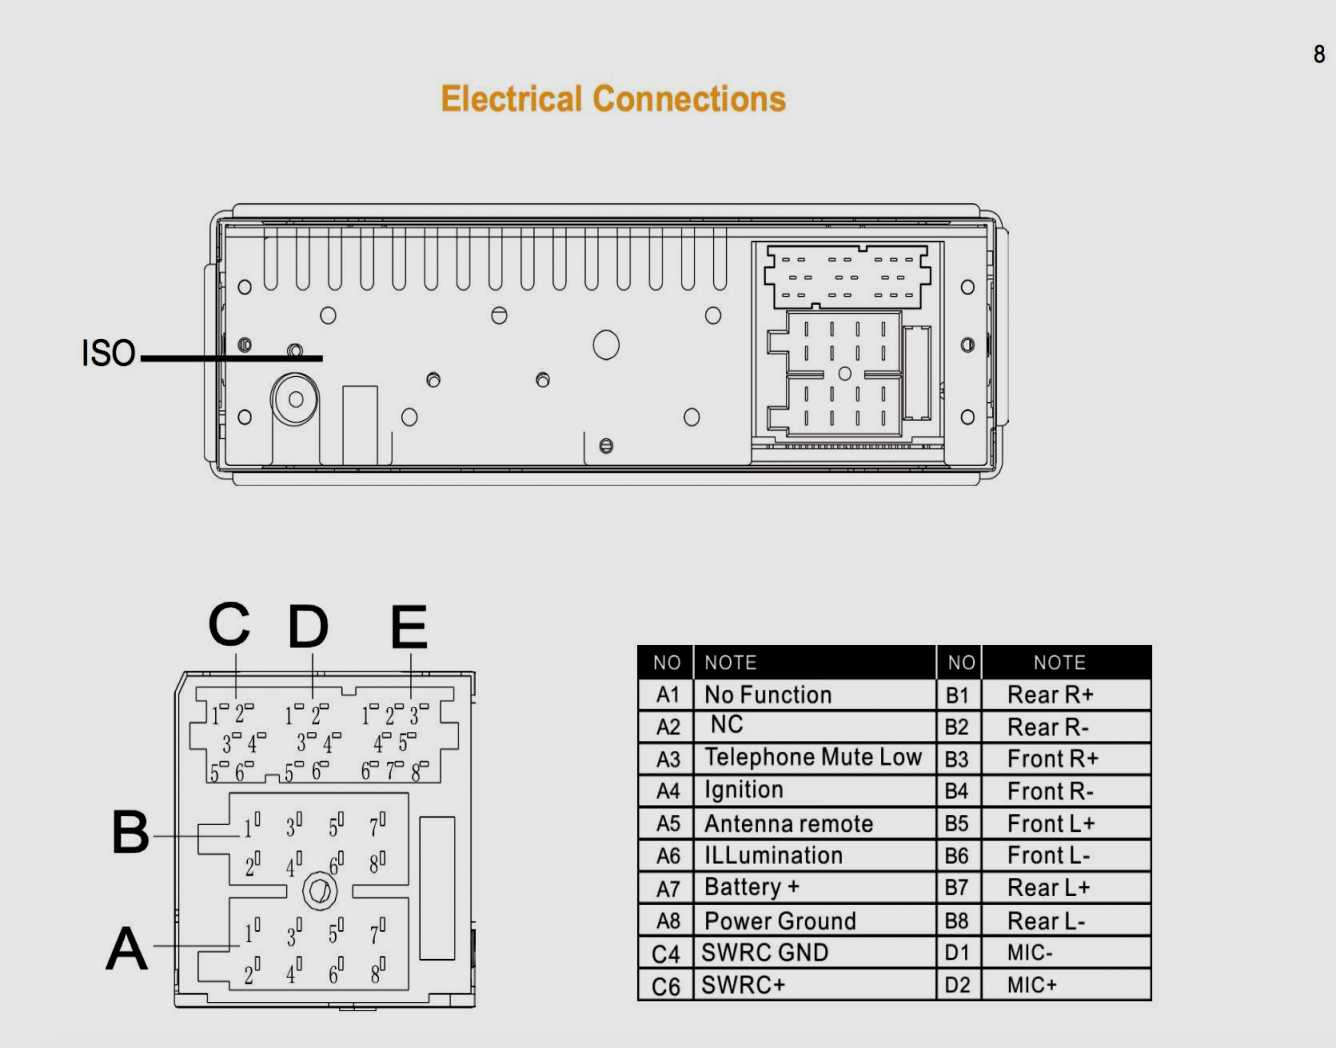 Alpine Ktp 445 Wiring Diagram | Wiring Diagram - Alpine Ktp 445 Wiring Diagram